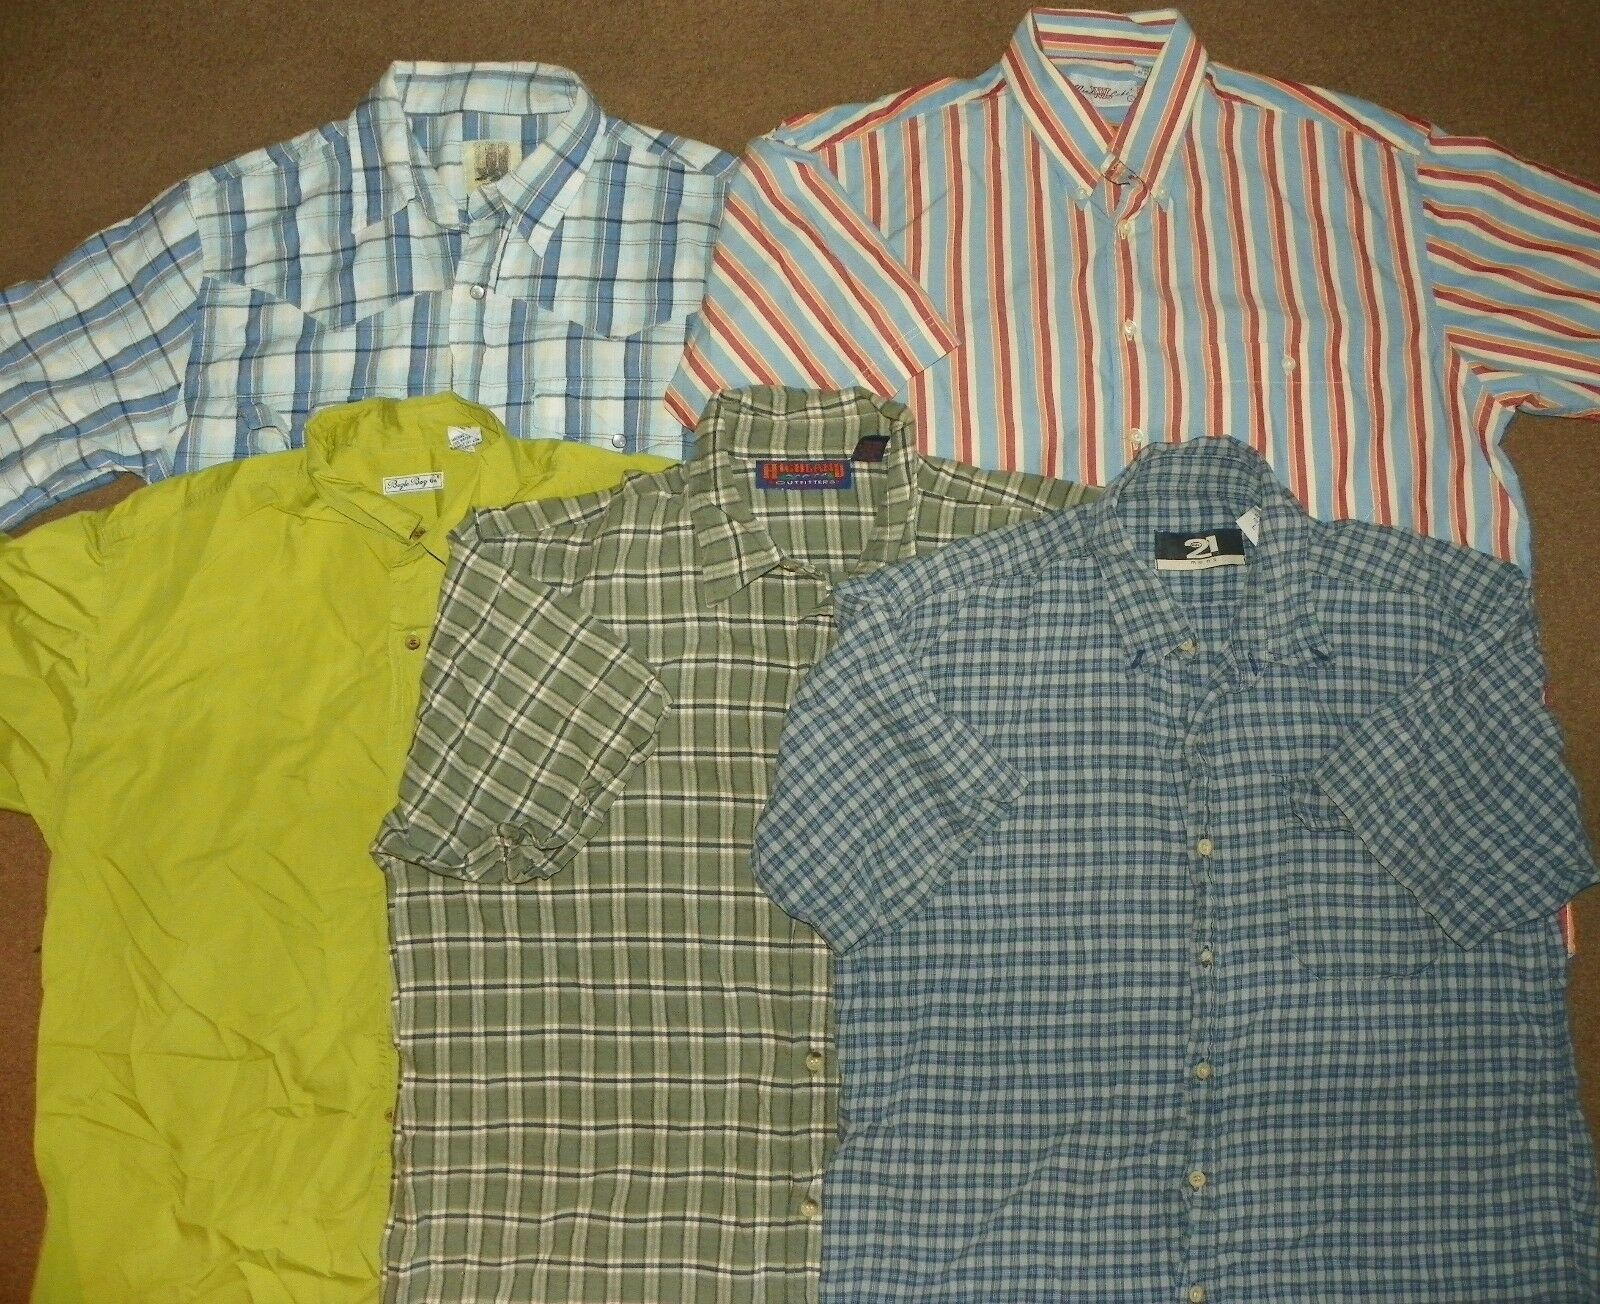 5 Mens Button-Up Casual Dress SHIRTS Large RUE 21 Highland Outfitters BUGLE BOY